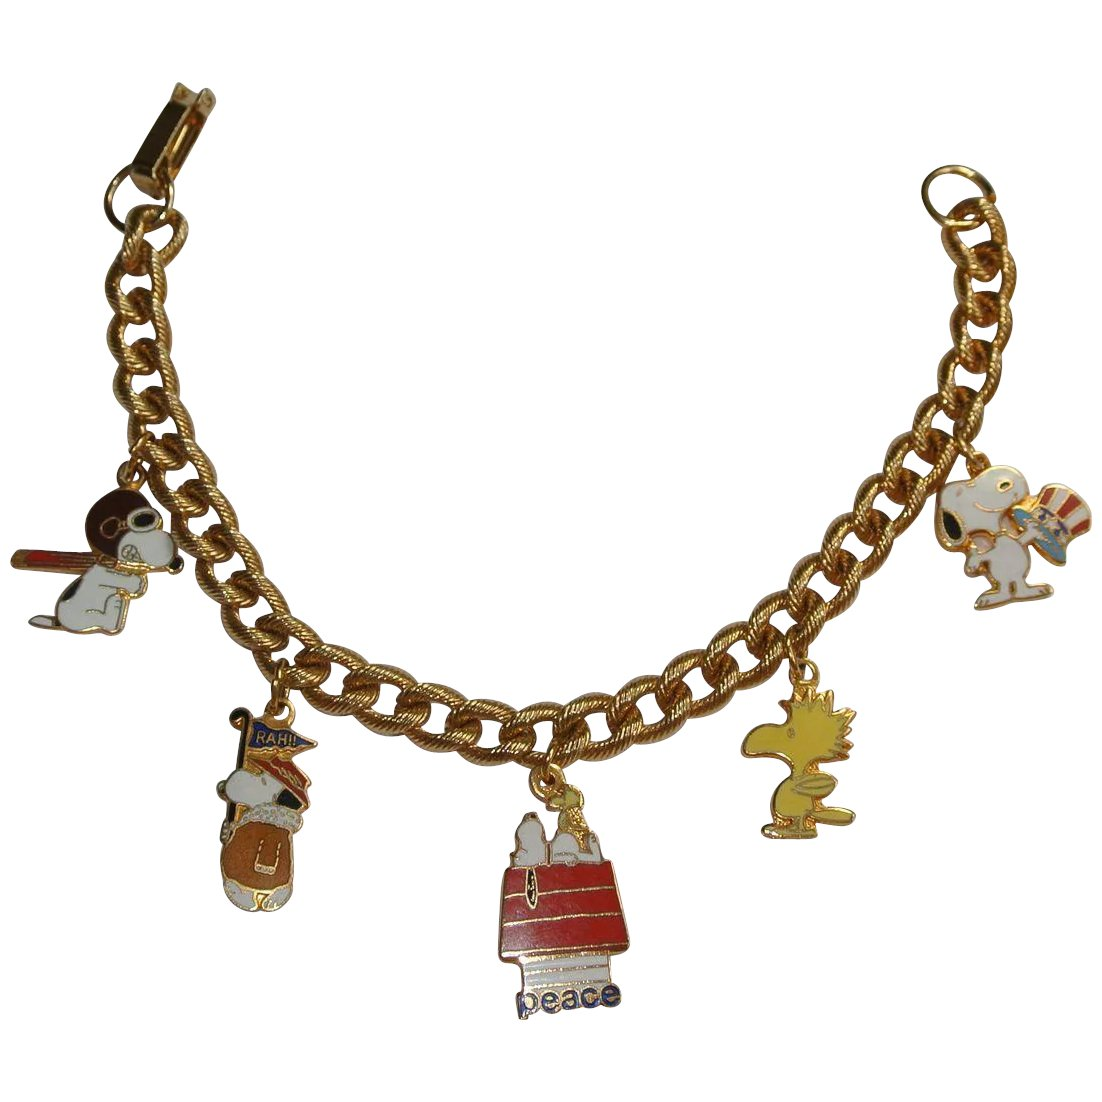 Snoopy Peanuts Gang Woodstock Charm Bracelet Click To Expand